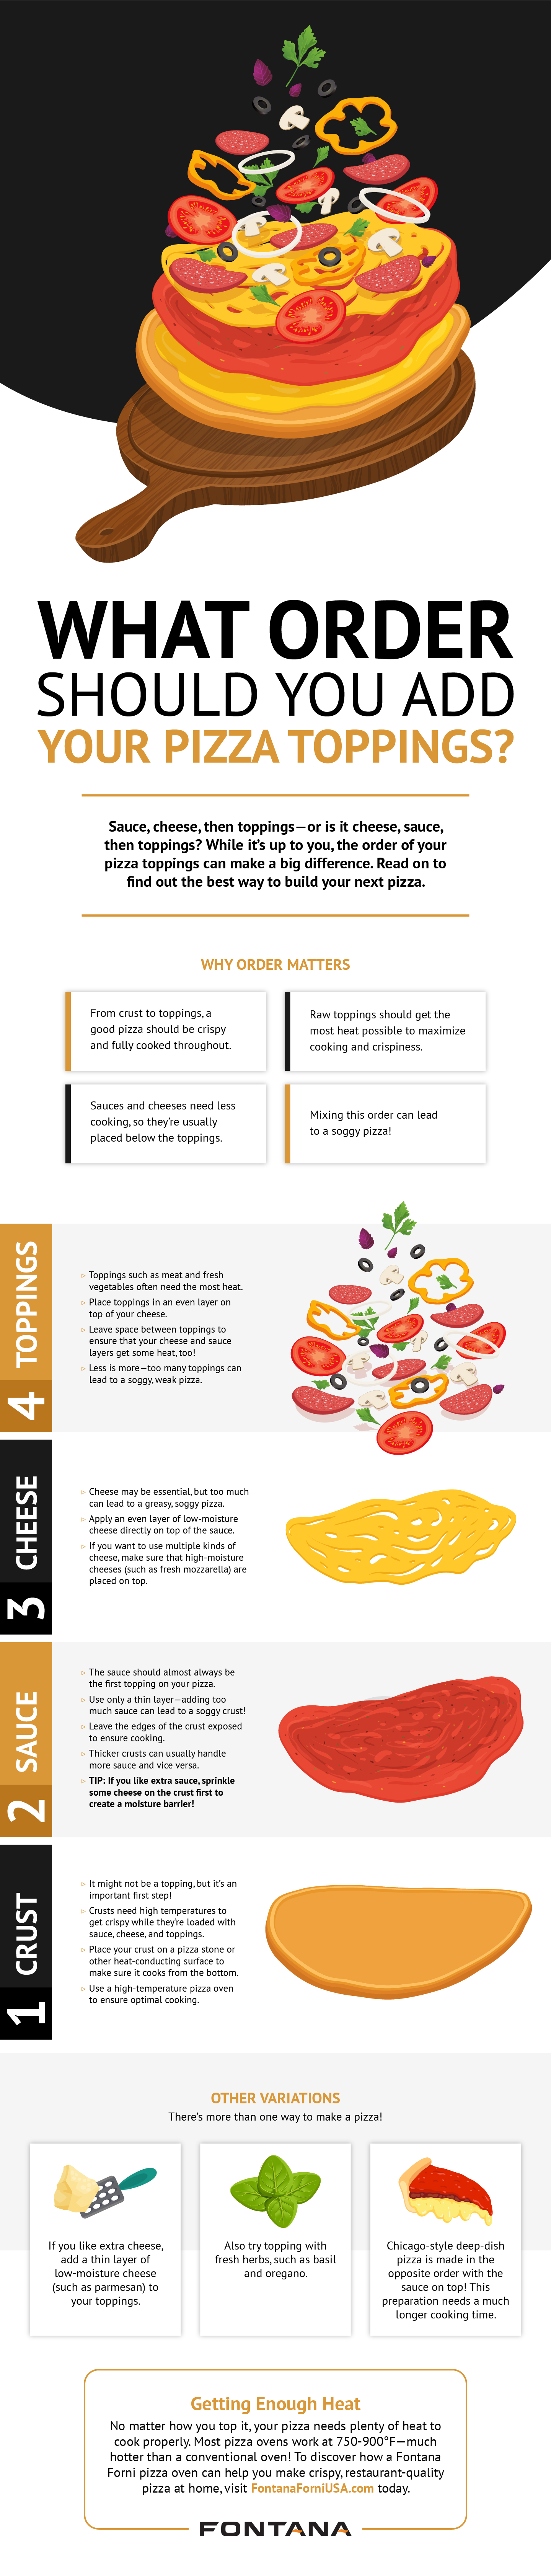 What Order Should You Add Your Pizza Toppings Infographic